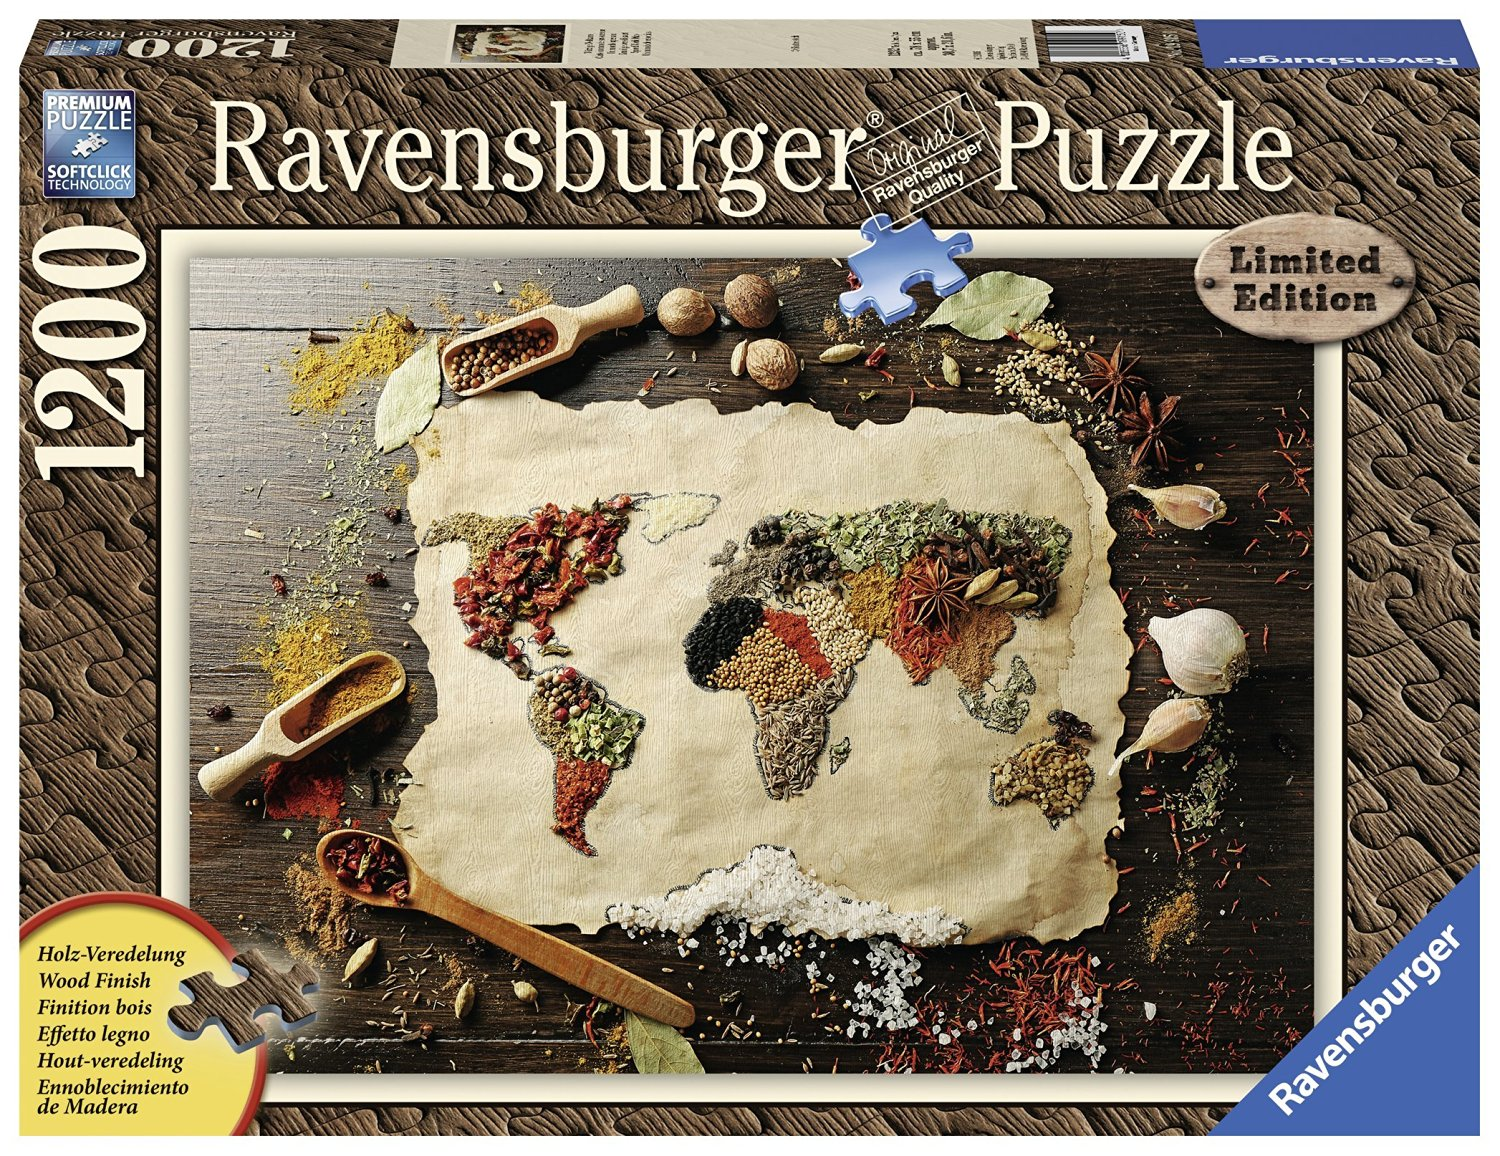 Puzzle wood finish spicy world map ravensburger 19915 1200 pieces wood finish spicy world map puzzle ravensburger 19915 gumiabroncs Image collections